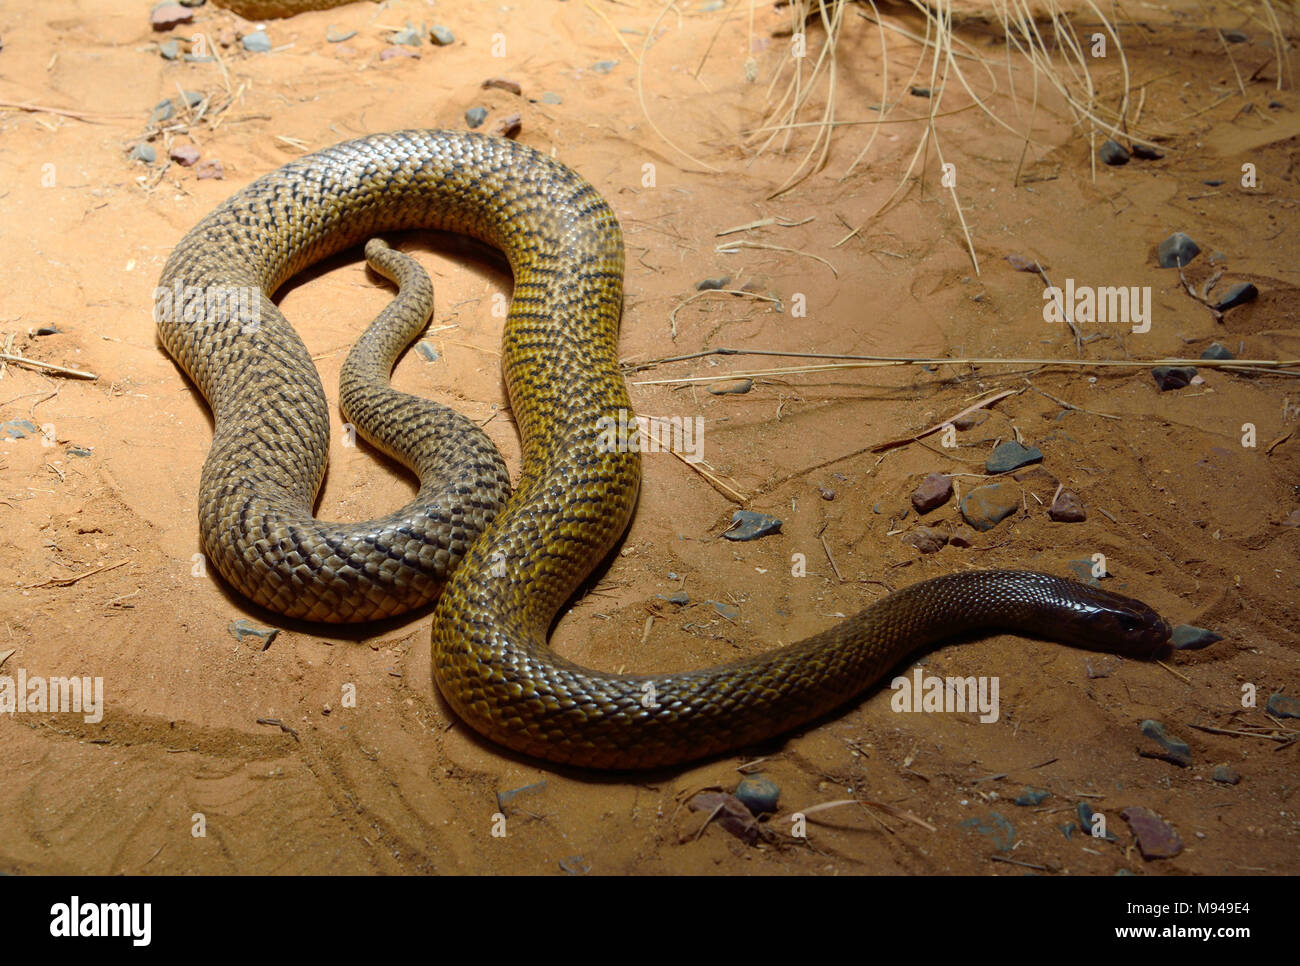 Inland taipan (Oxyuranus microlepidotus) is the most venomous snake in the world, endemic to central Australia. - Stock Image